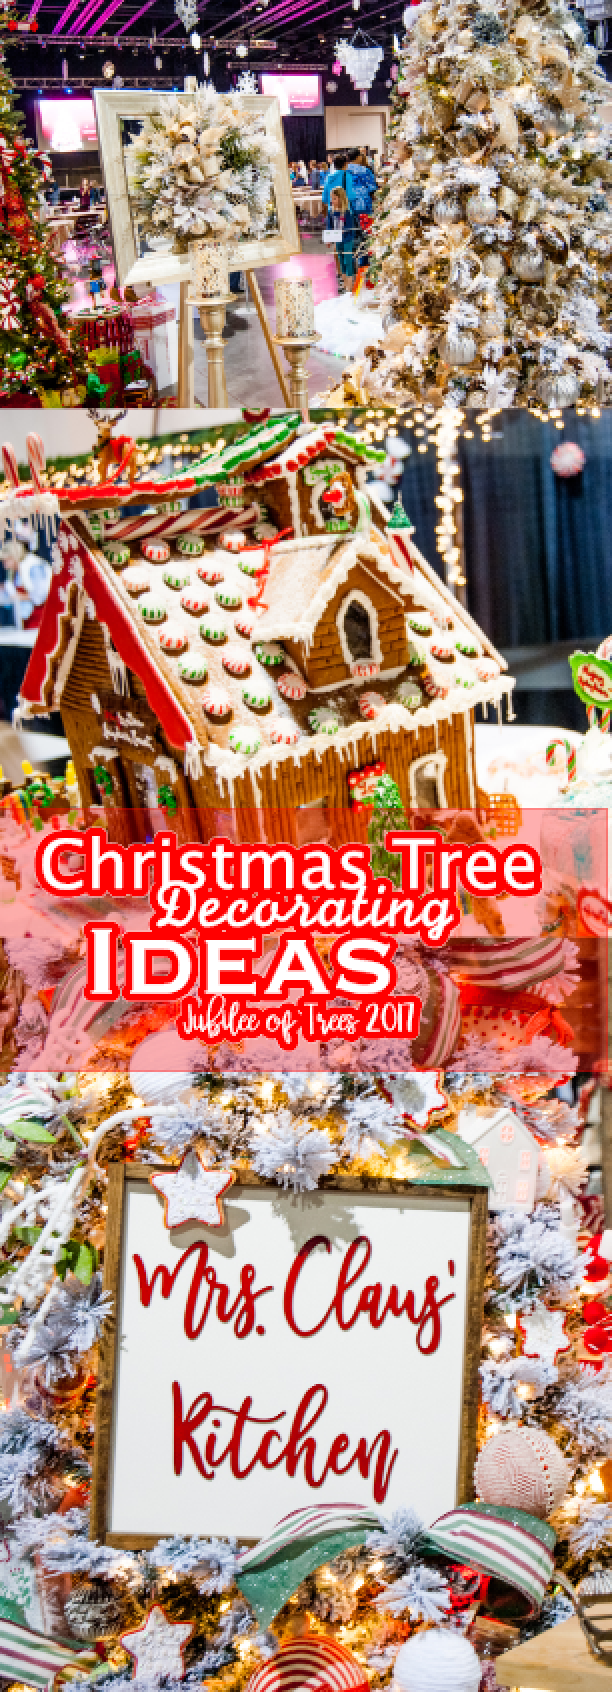 Christmas Tree Decorating Ideas-Jubilee of Trees 2017 ...